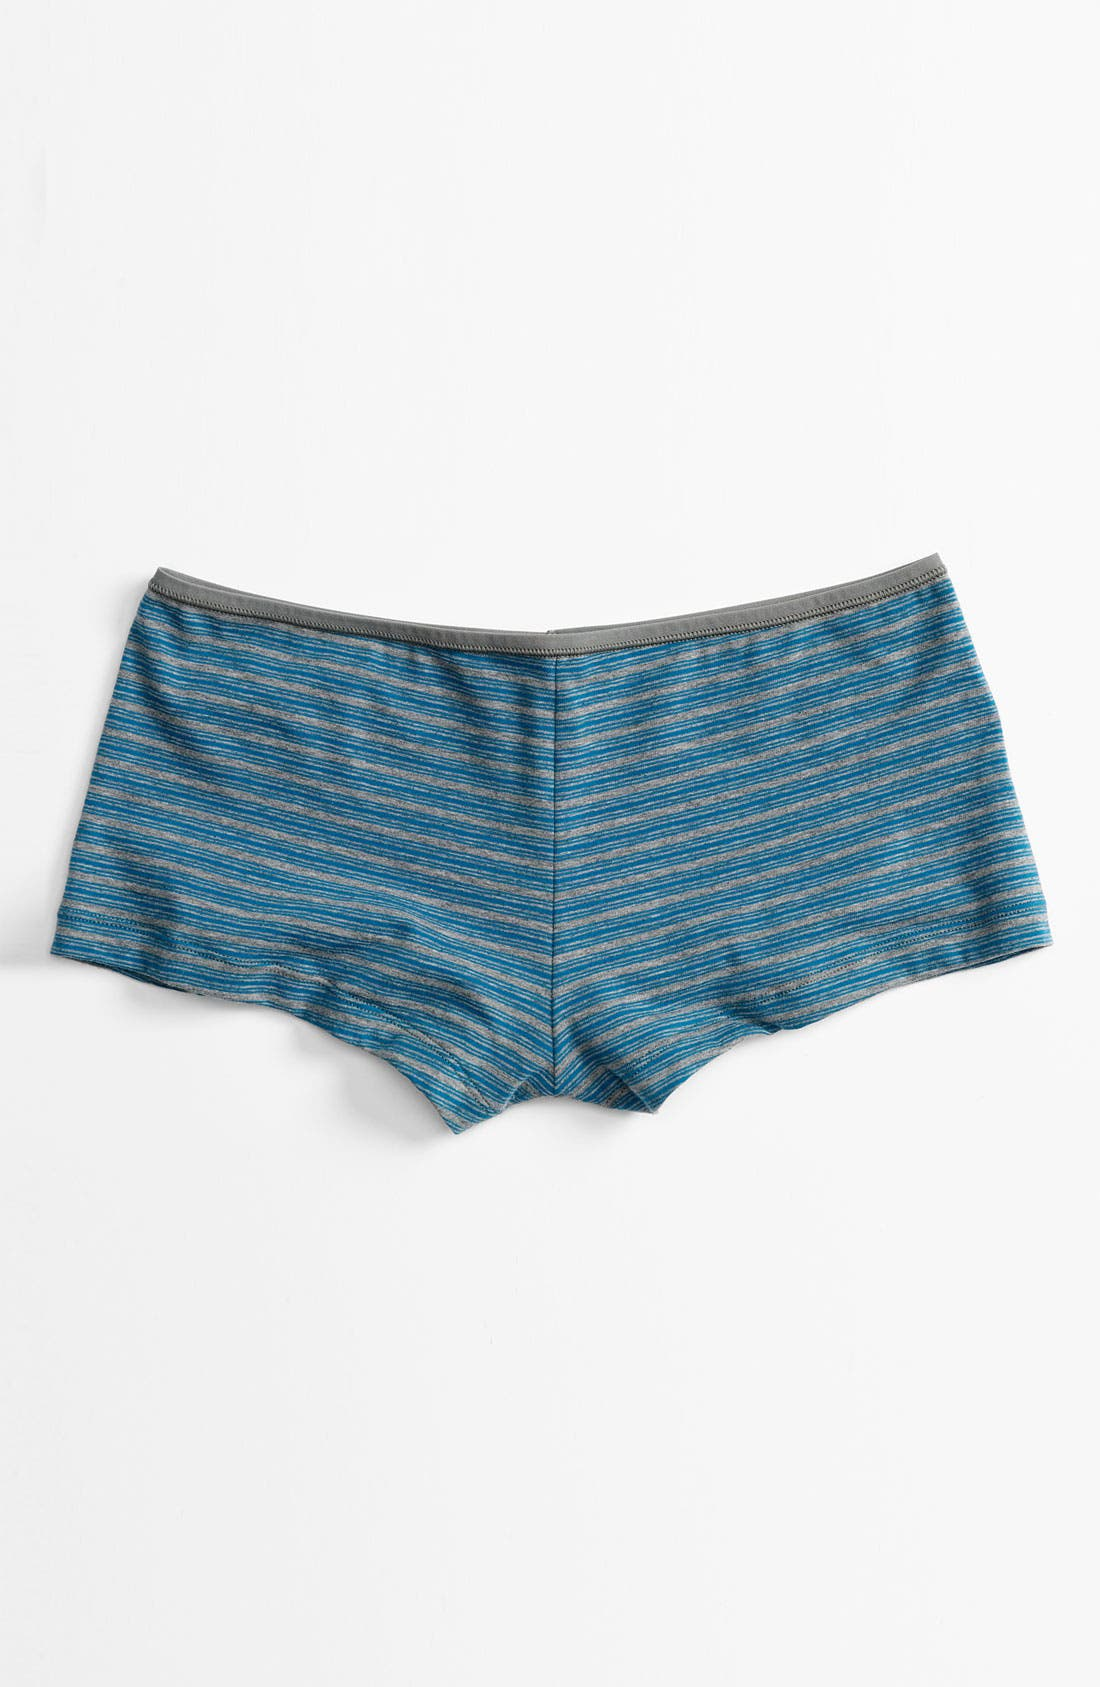 Main Image - Shimera Stretch Cotton Boyshorts (4 for $34)